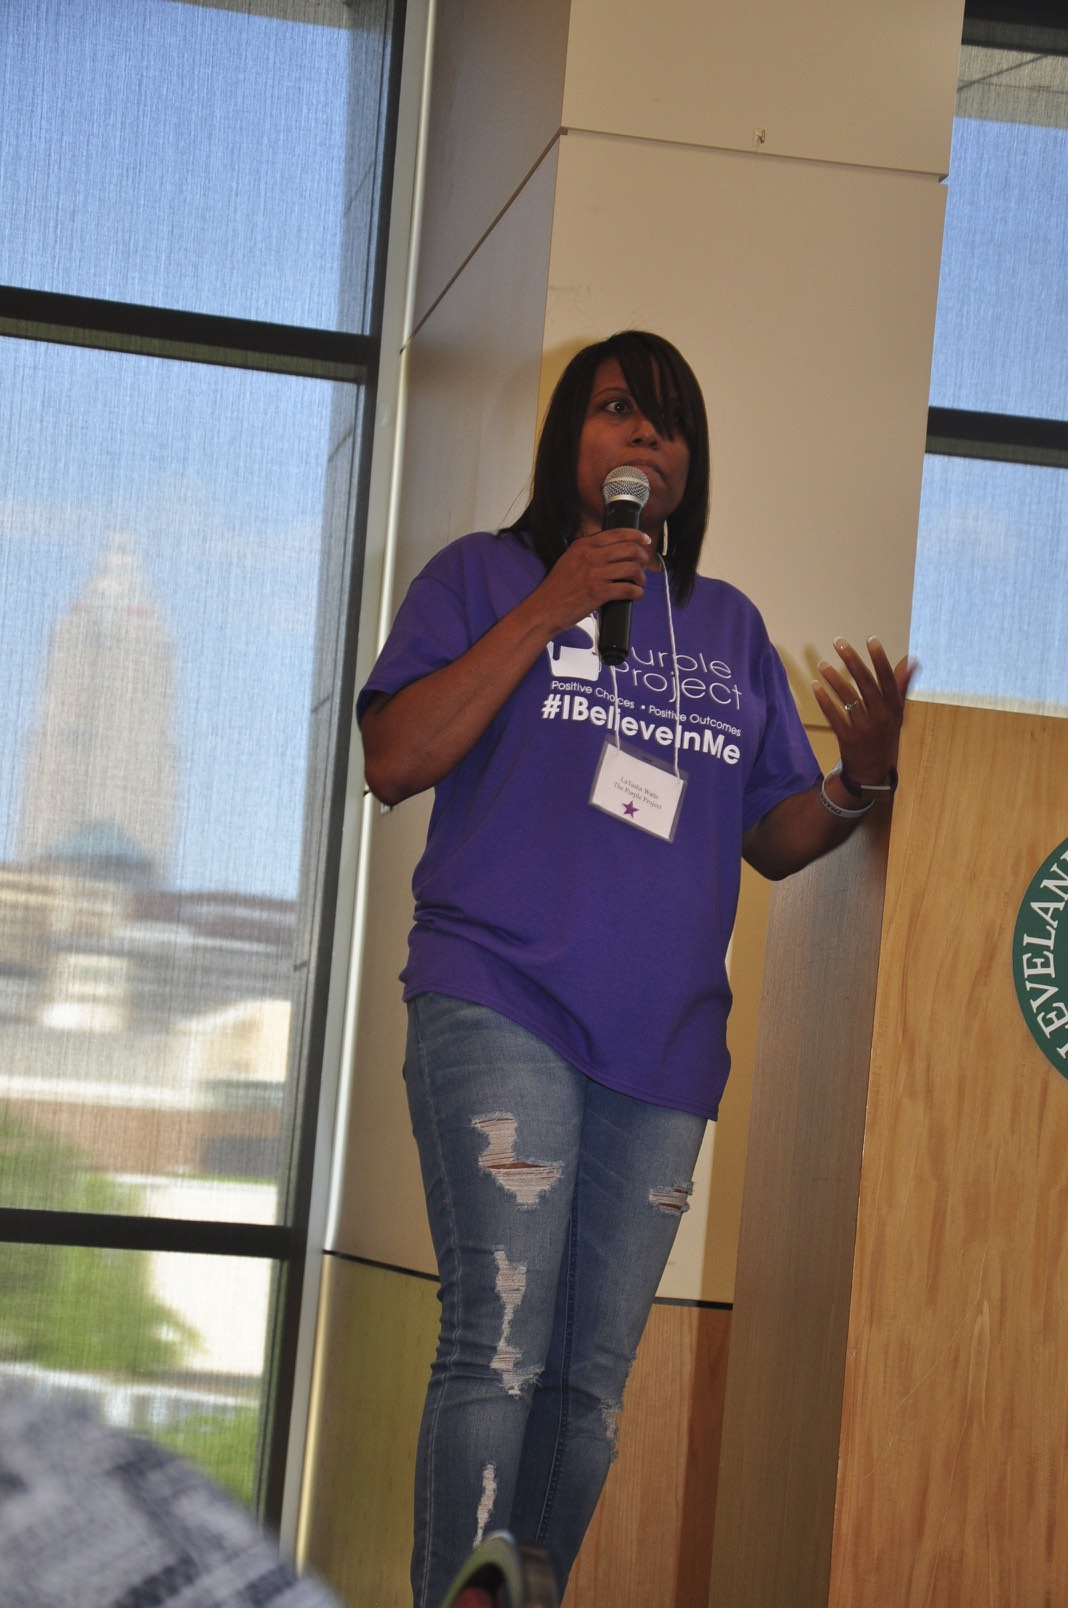 LaTasha C. Watts The Purple Project  I Believe In Me